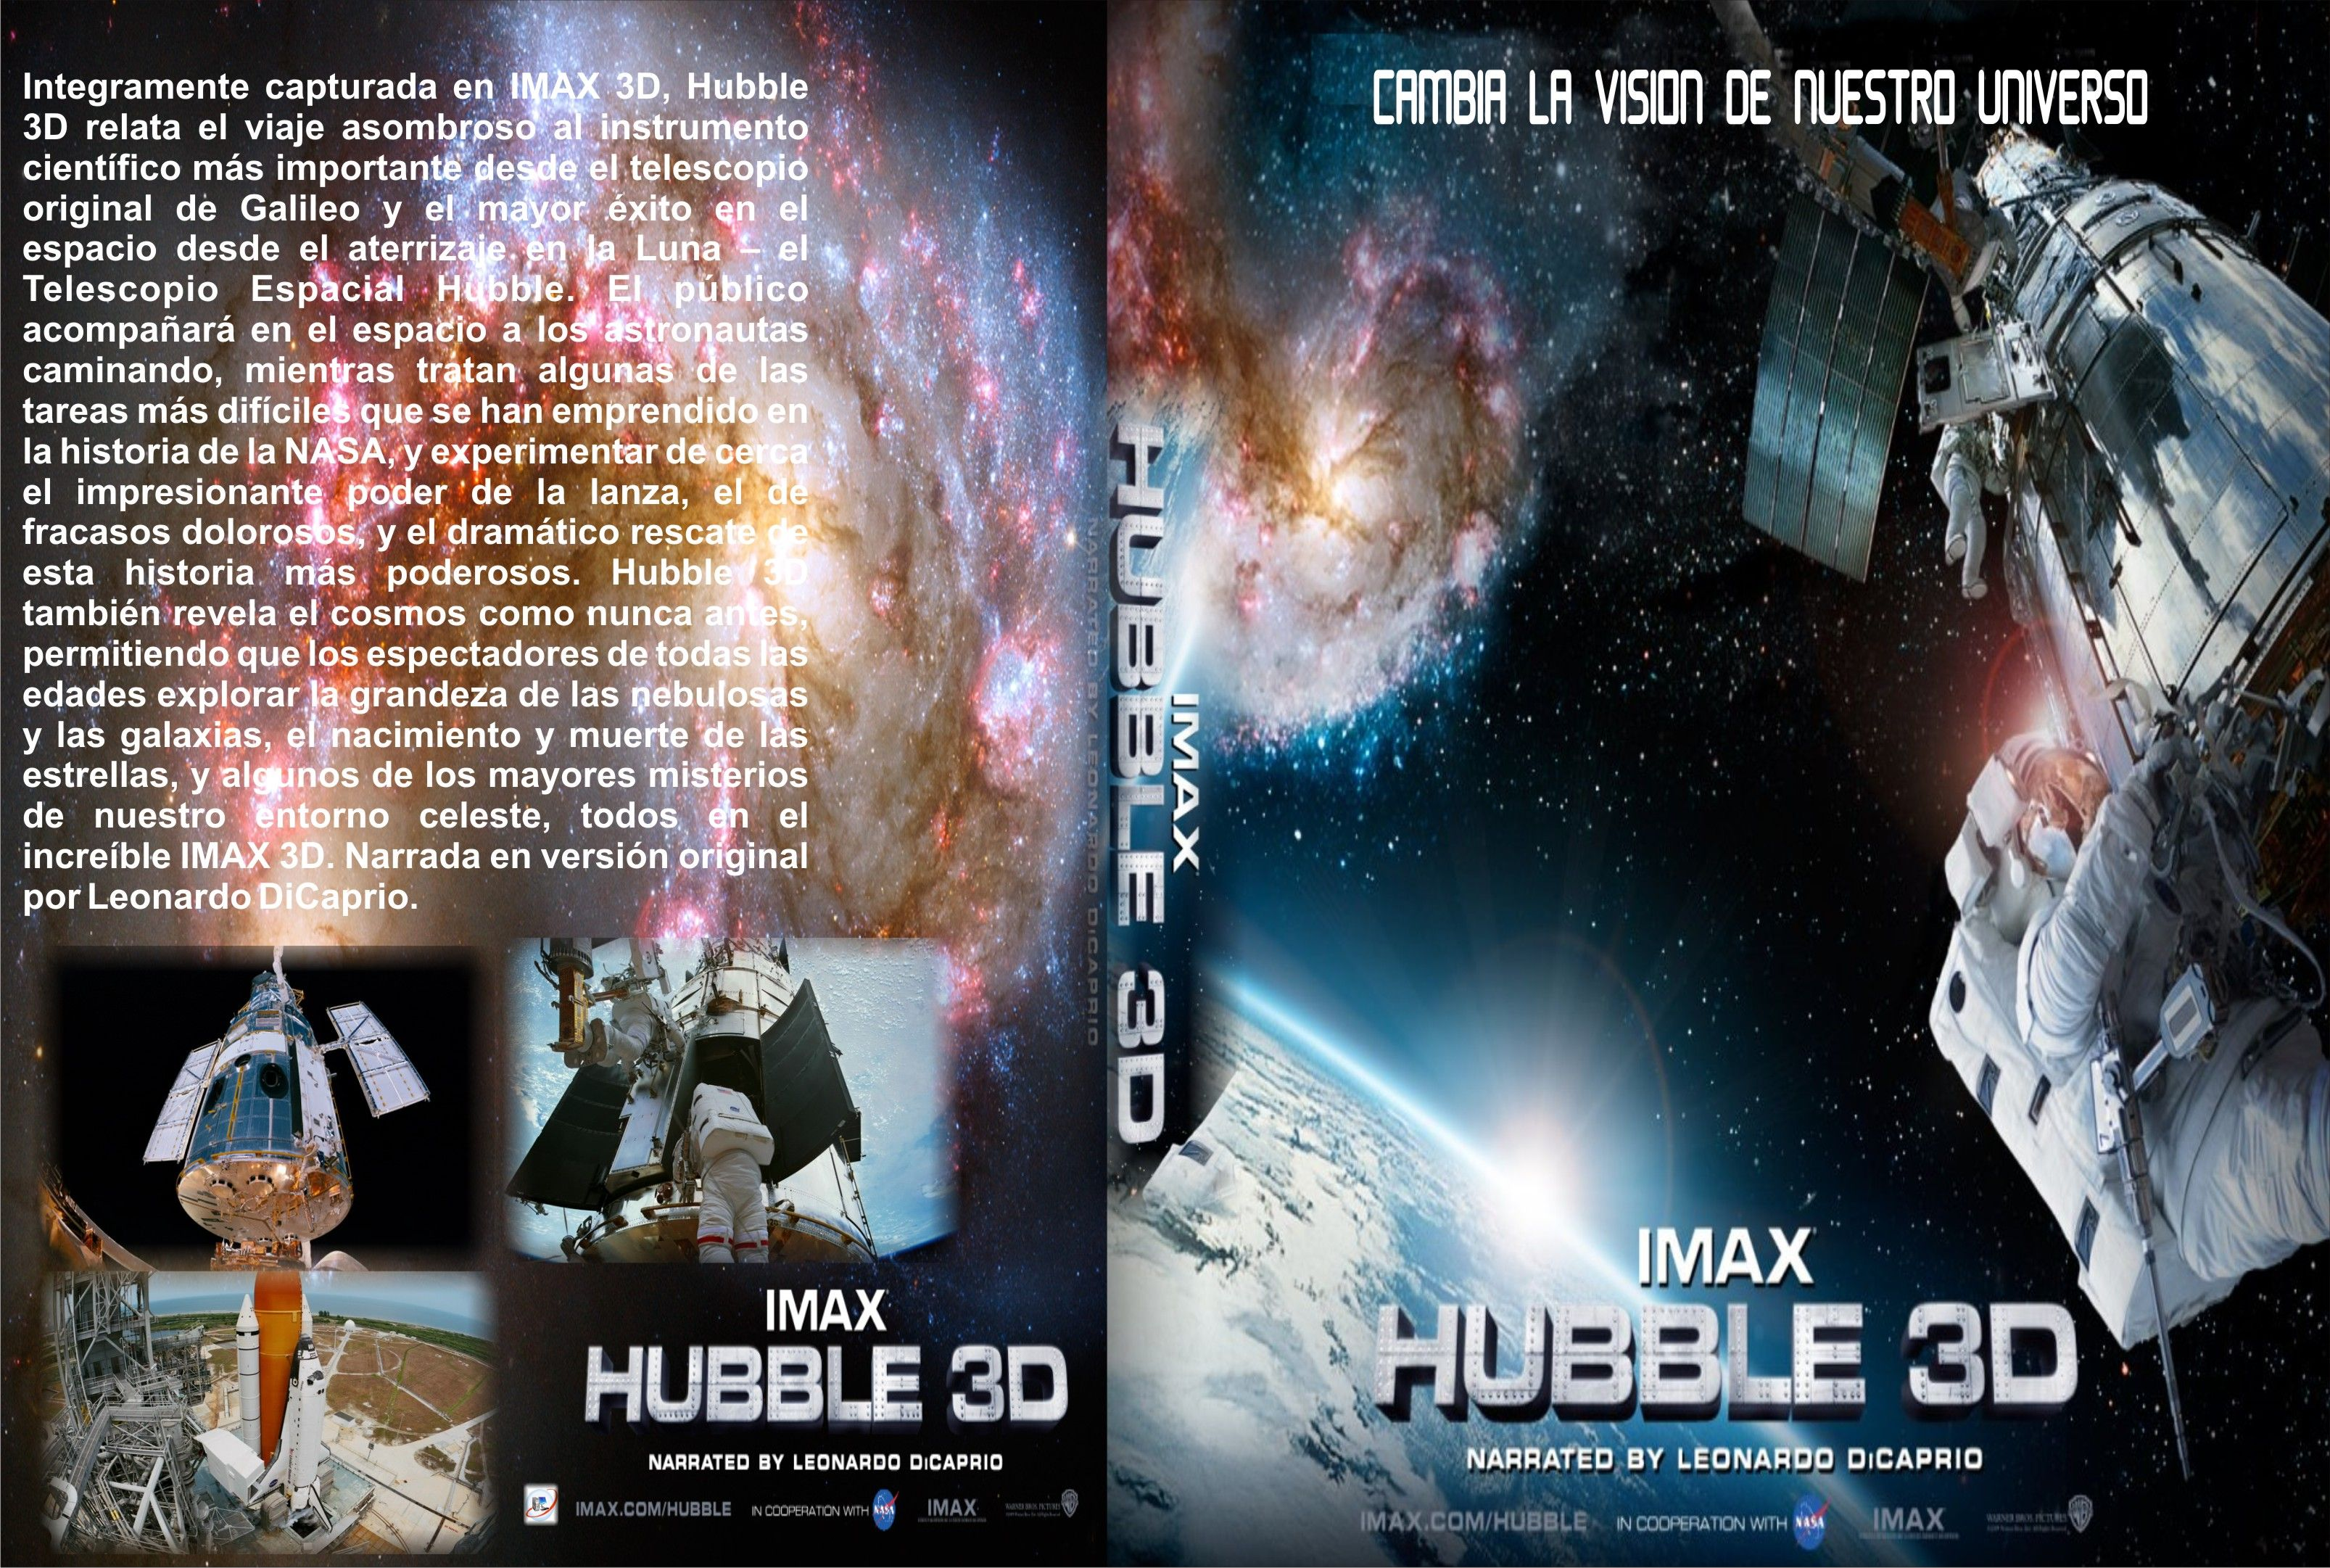 Hubble imax 3d trailer - youtube